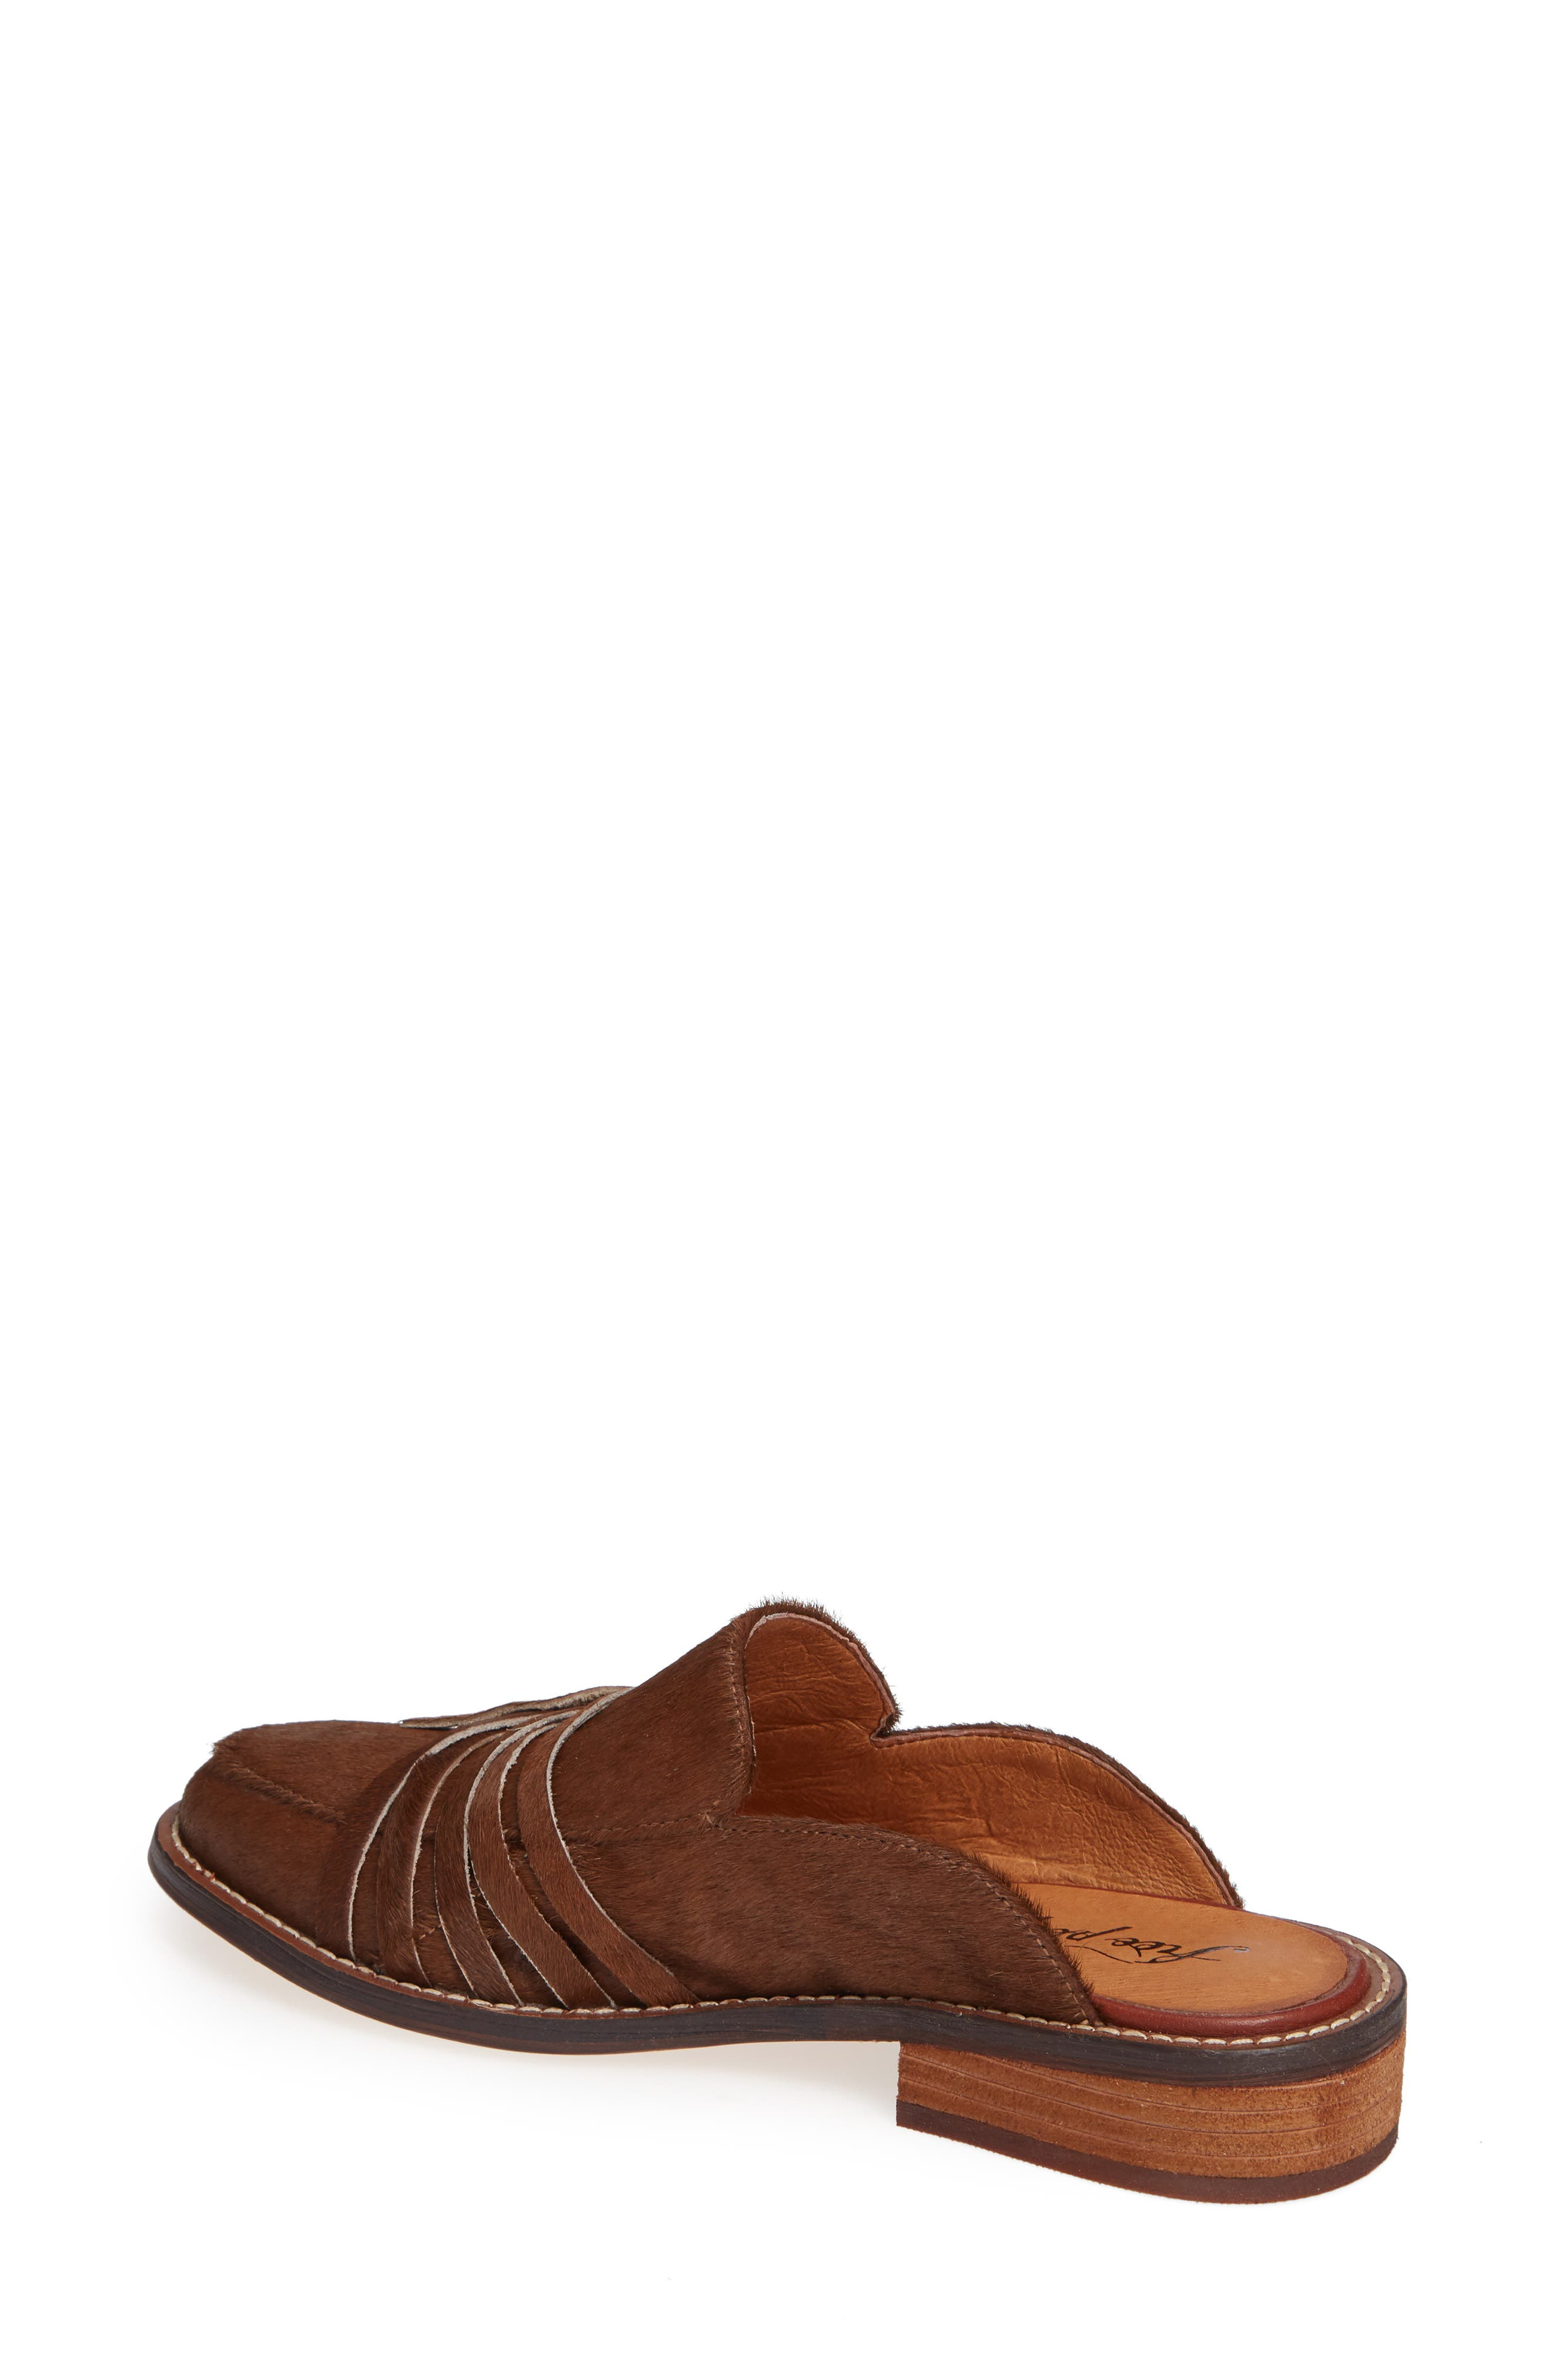 Saratoga Loafer Mule,                             Alternate thumbnail 2, color,                             COPPER CALF HAIR